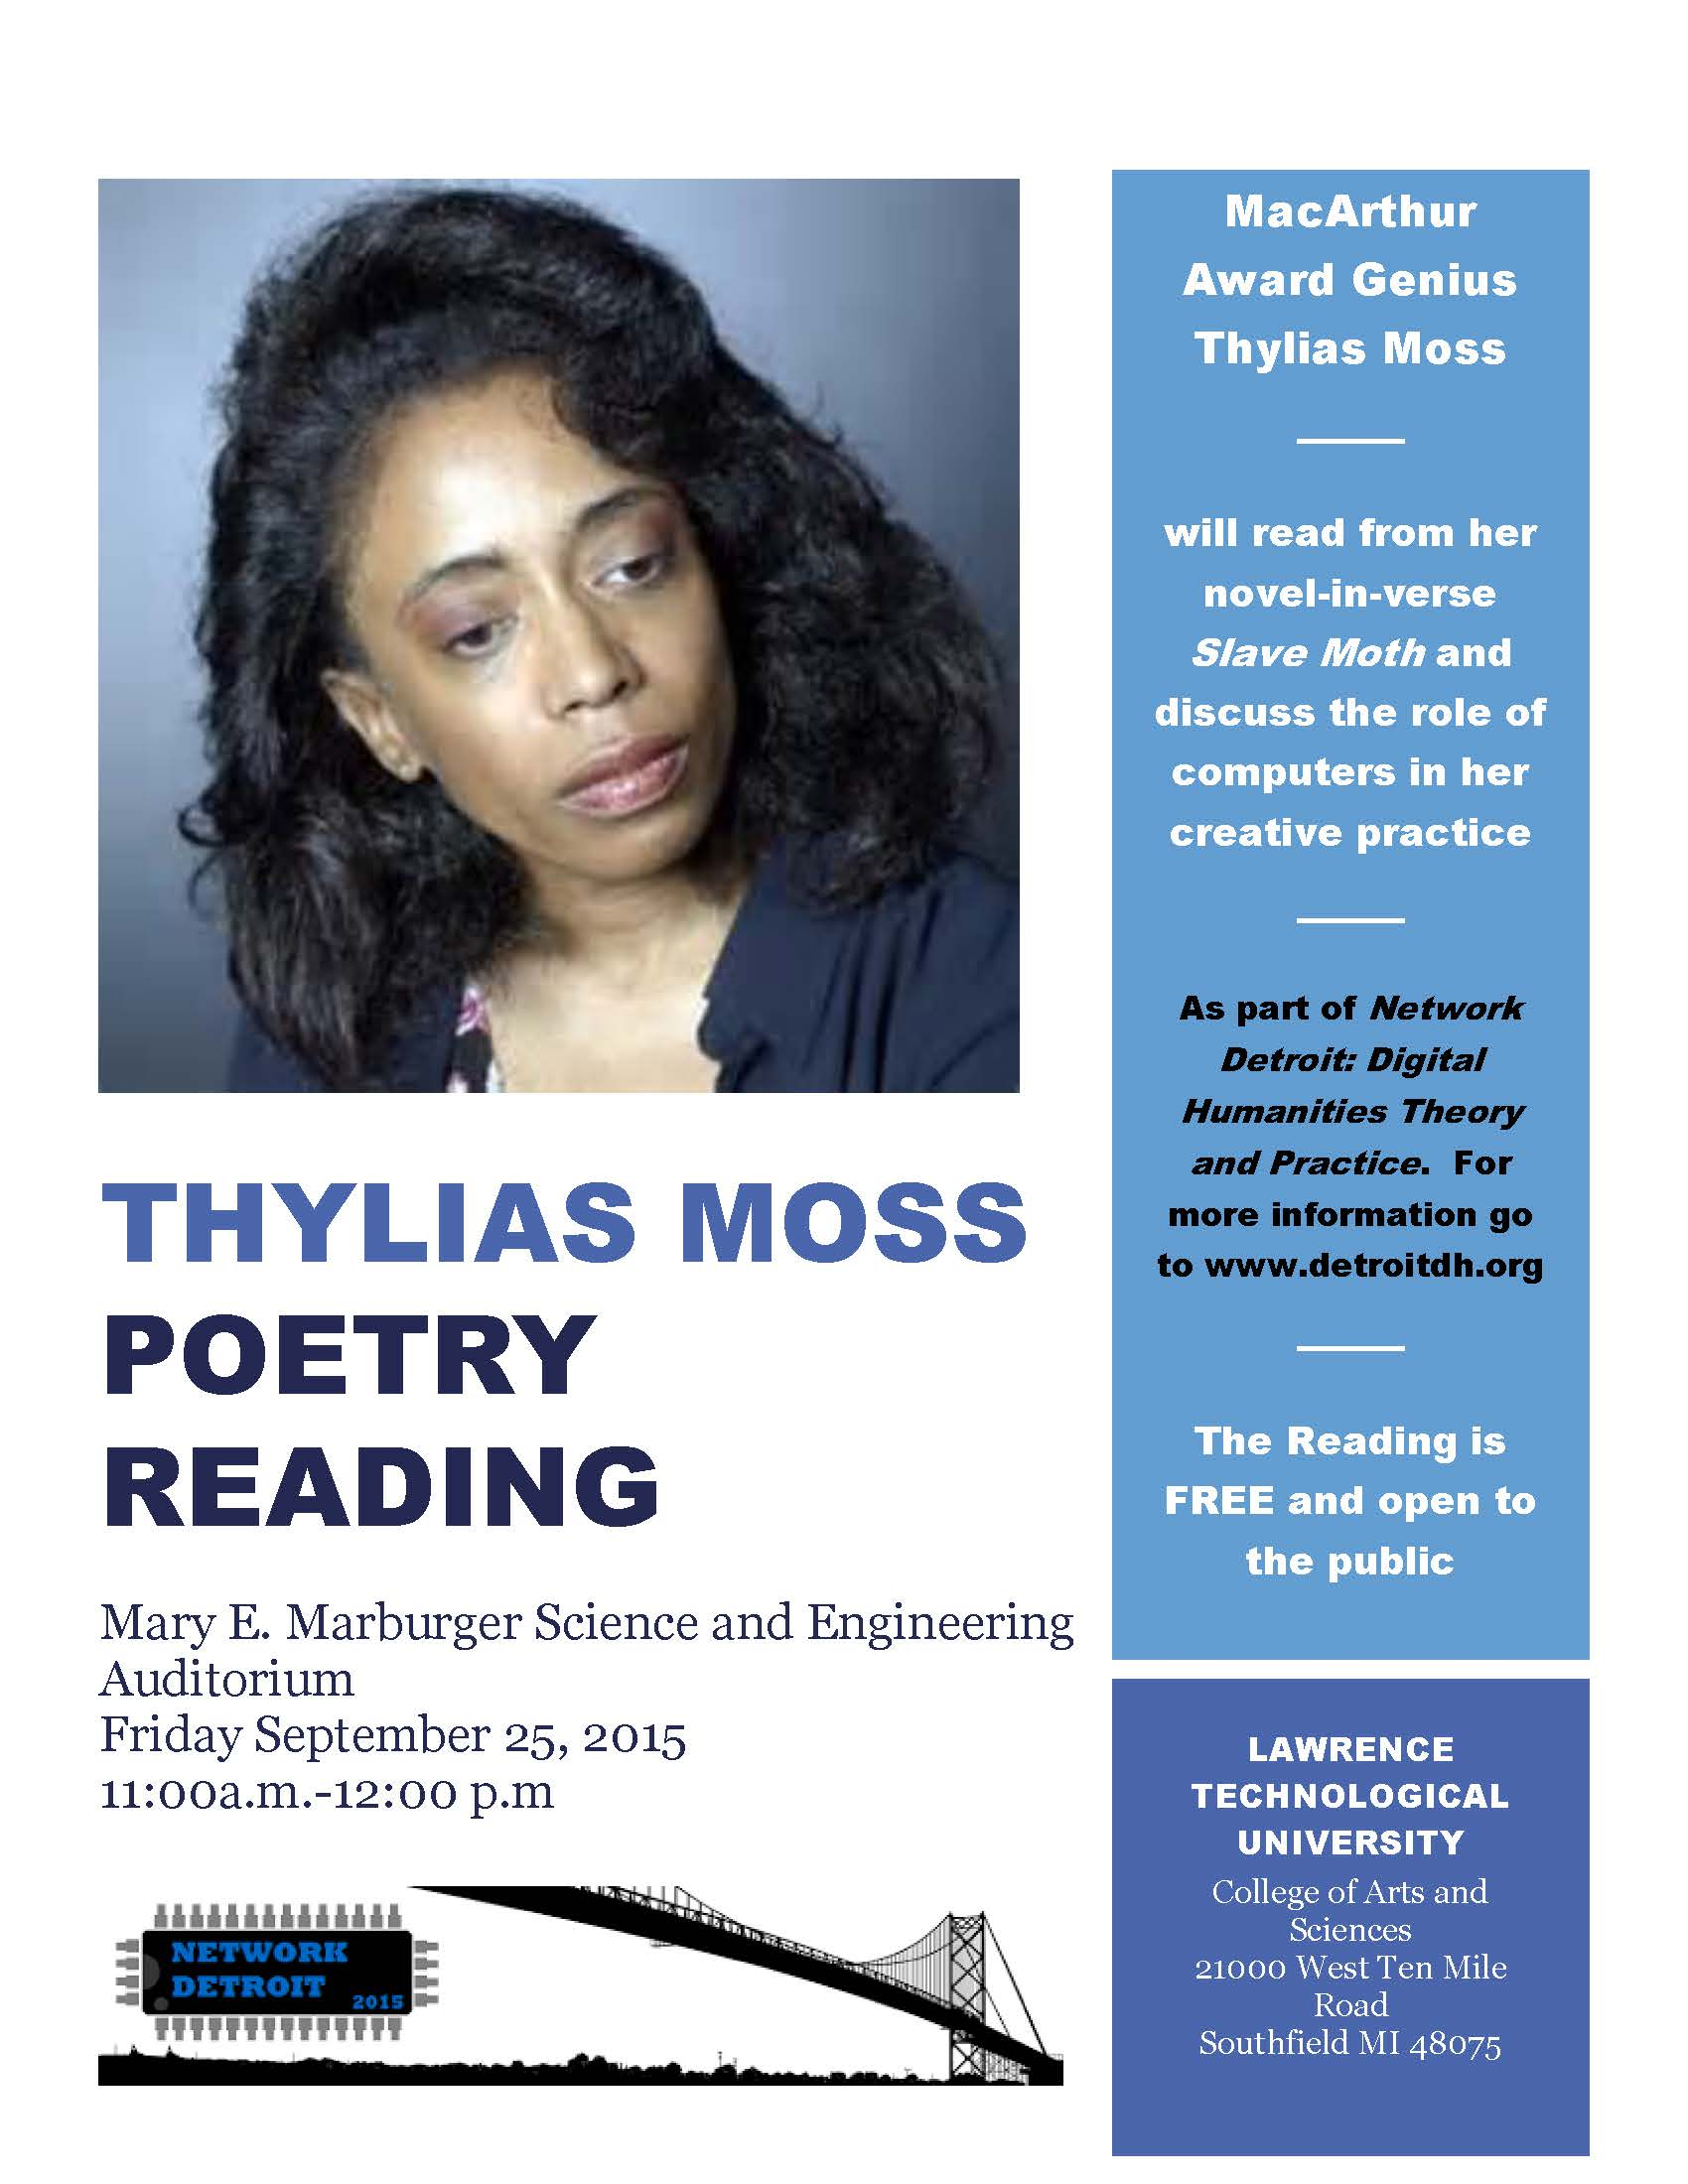 a biography of thylias moss a writer Author's bio exerpted from the inside back cover of the book thylias moss is a prize-winning poet who, in 1991, received the whiting writers' award as well as the dewar's profiles performance arts award for poetry, and in 1990 was the winner of the national poetry series competition.